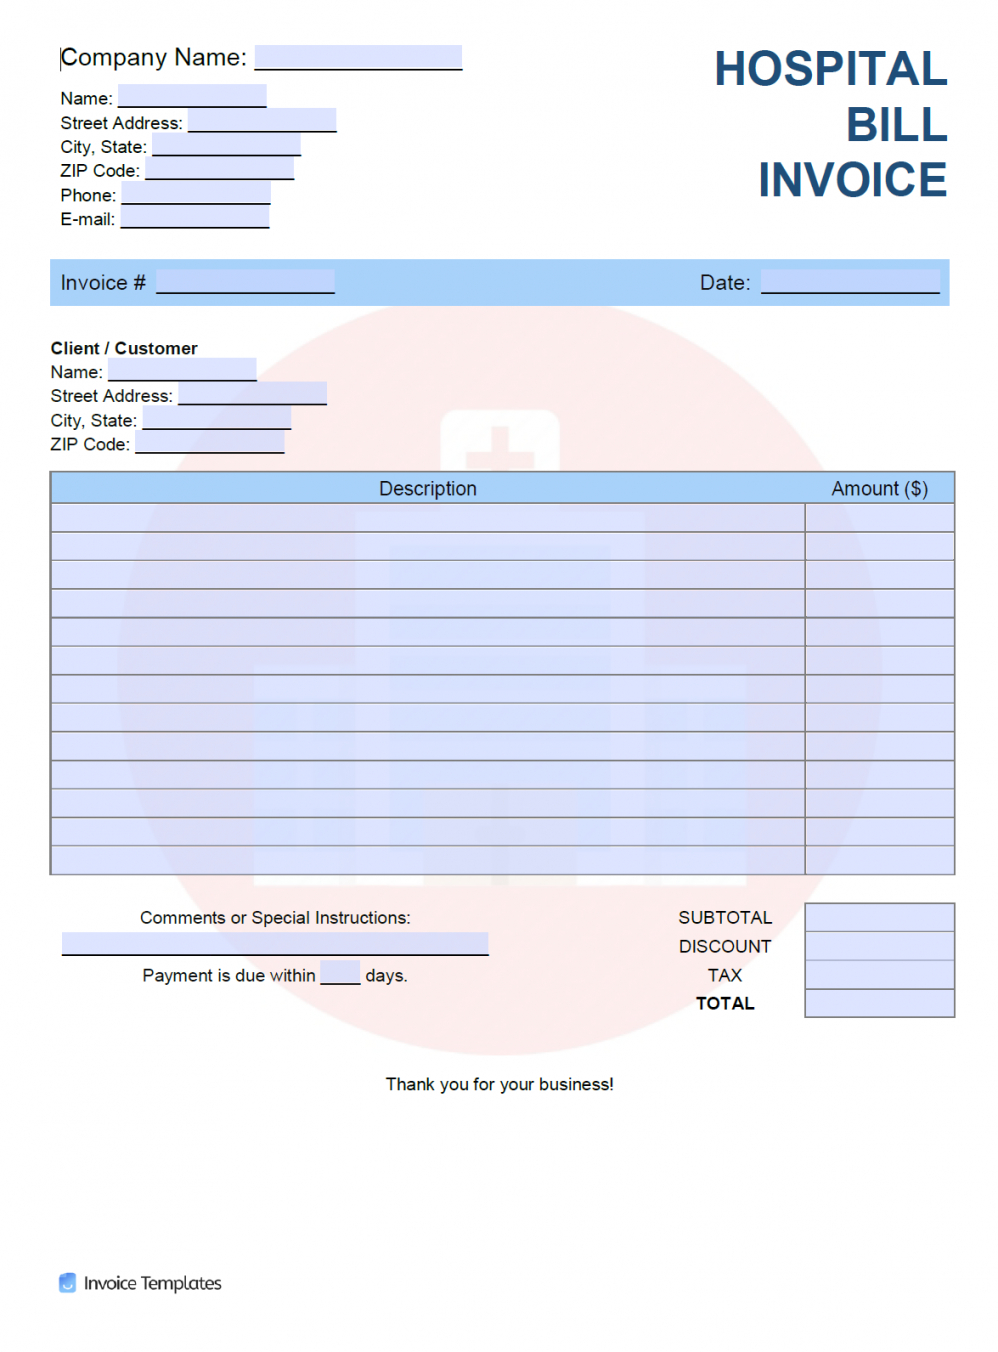 sample free hospital bill invoice template  pdf  word  excel medical bill statement template pdf